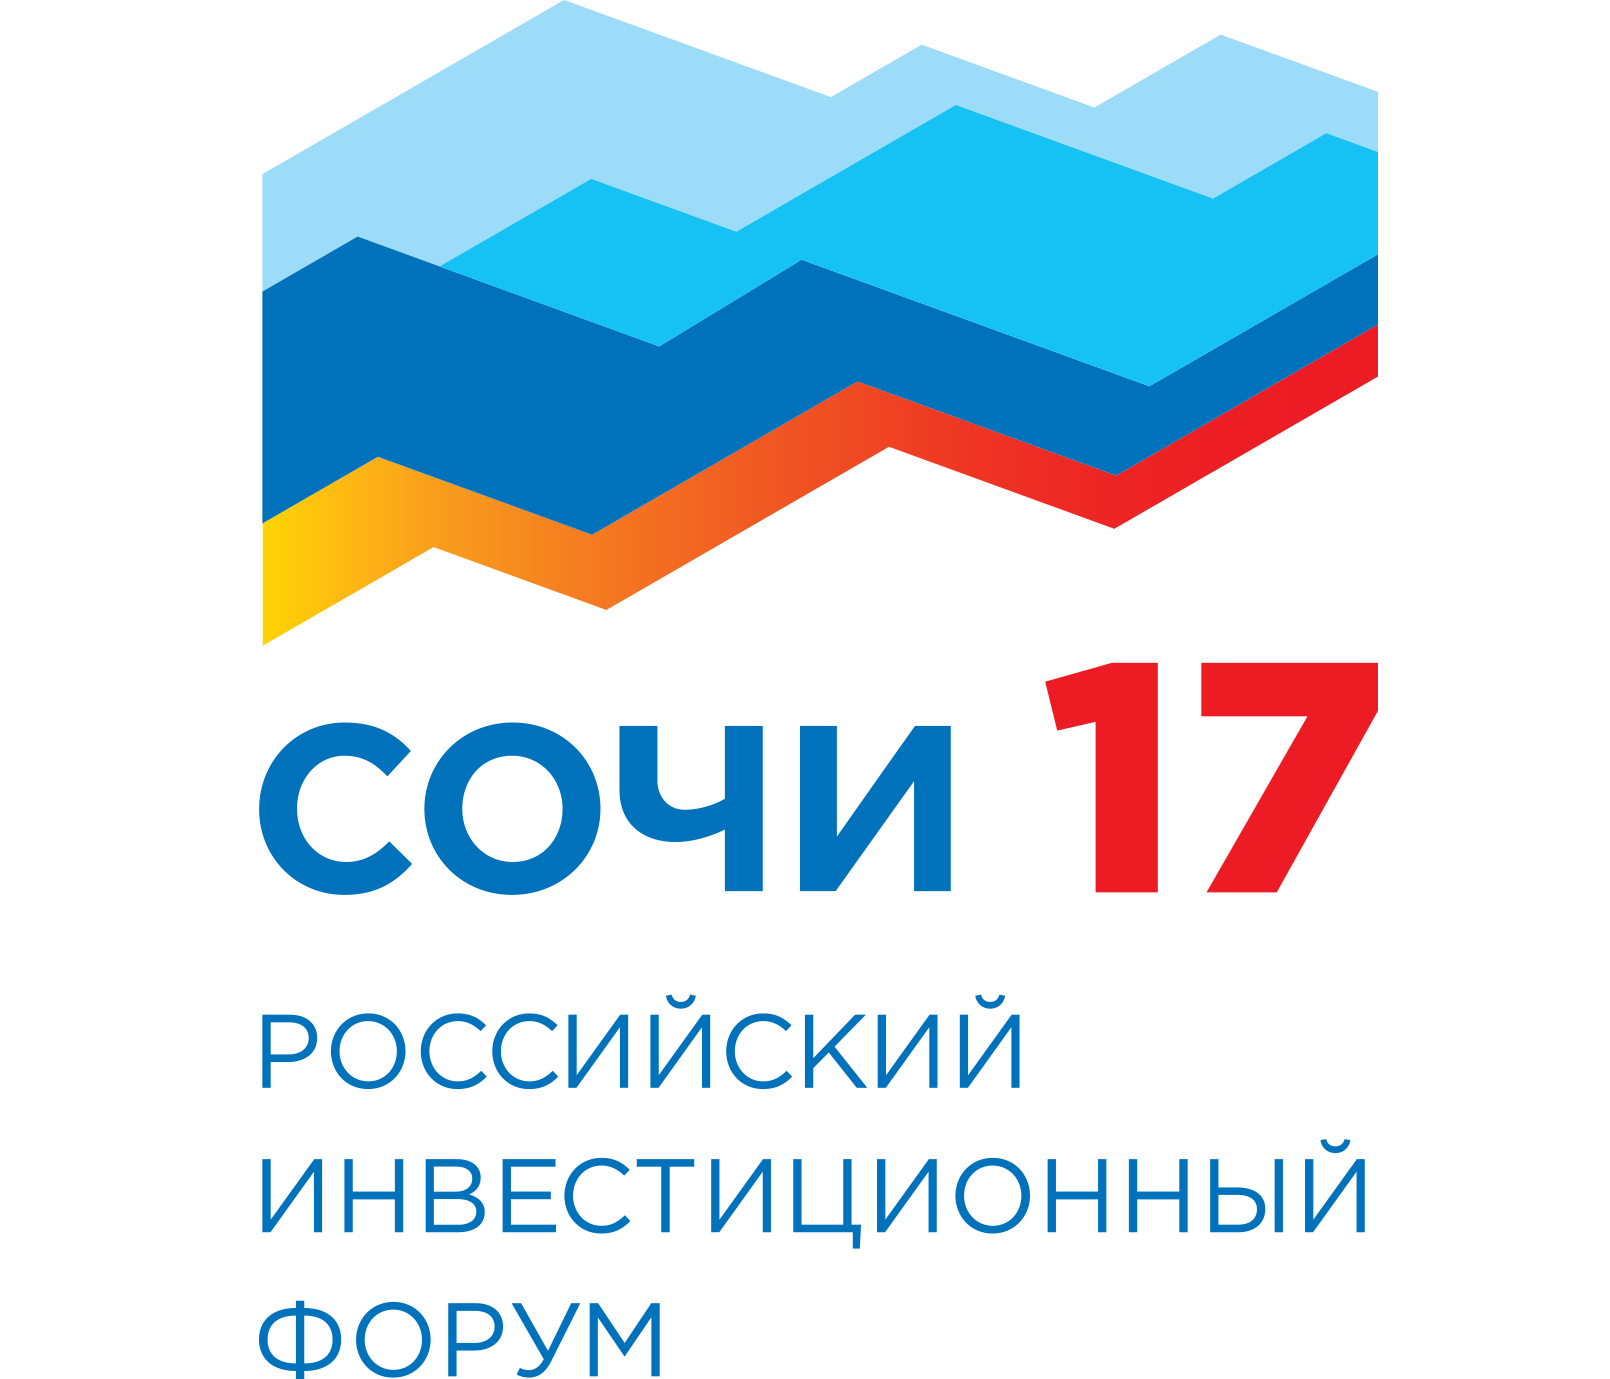 Experts of the Cadastеr Institute took part in the Russian investment forum